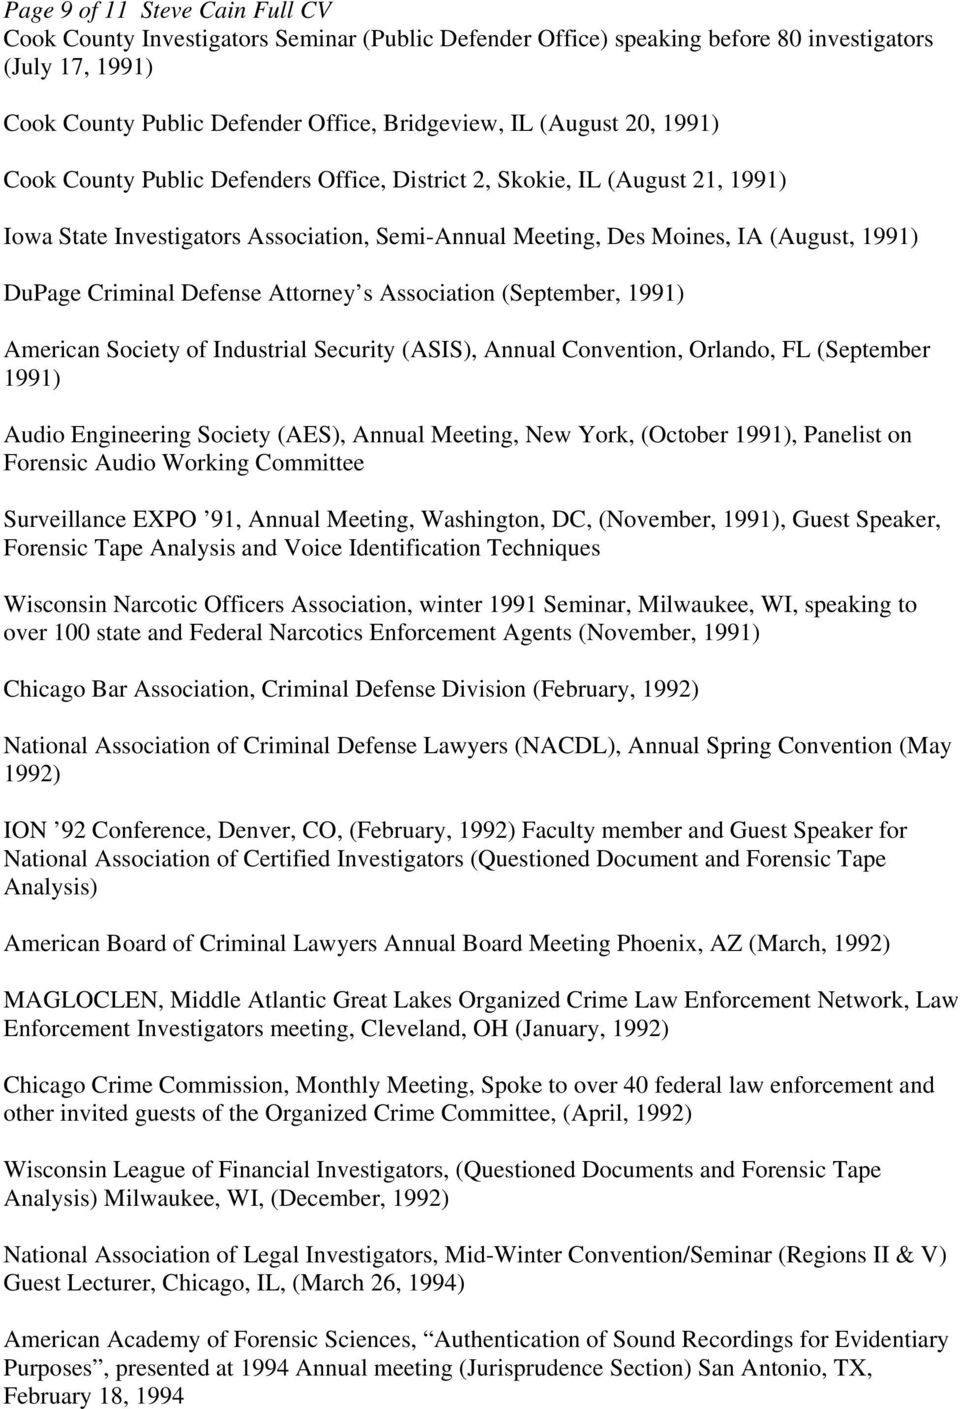 Defense Attorney s Association (September, 1991) American Society of Industrial Security (ASIS), Annual Convention, Orlando, FL (September 1991) Audio Engineering Society (AES), Annual Meeting, New